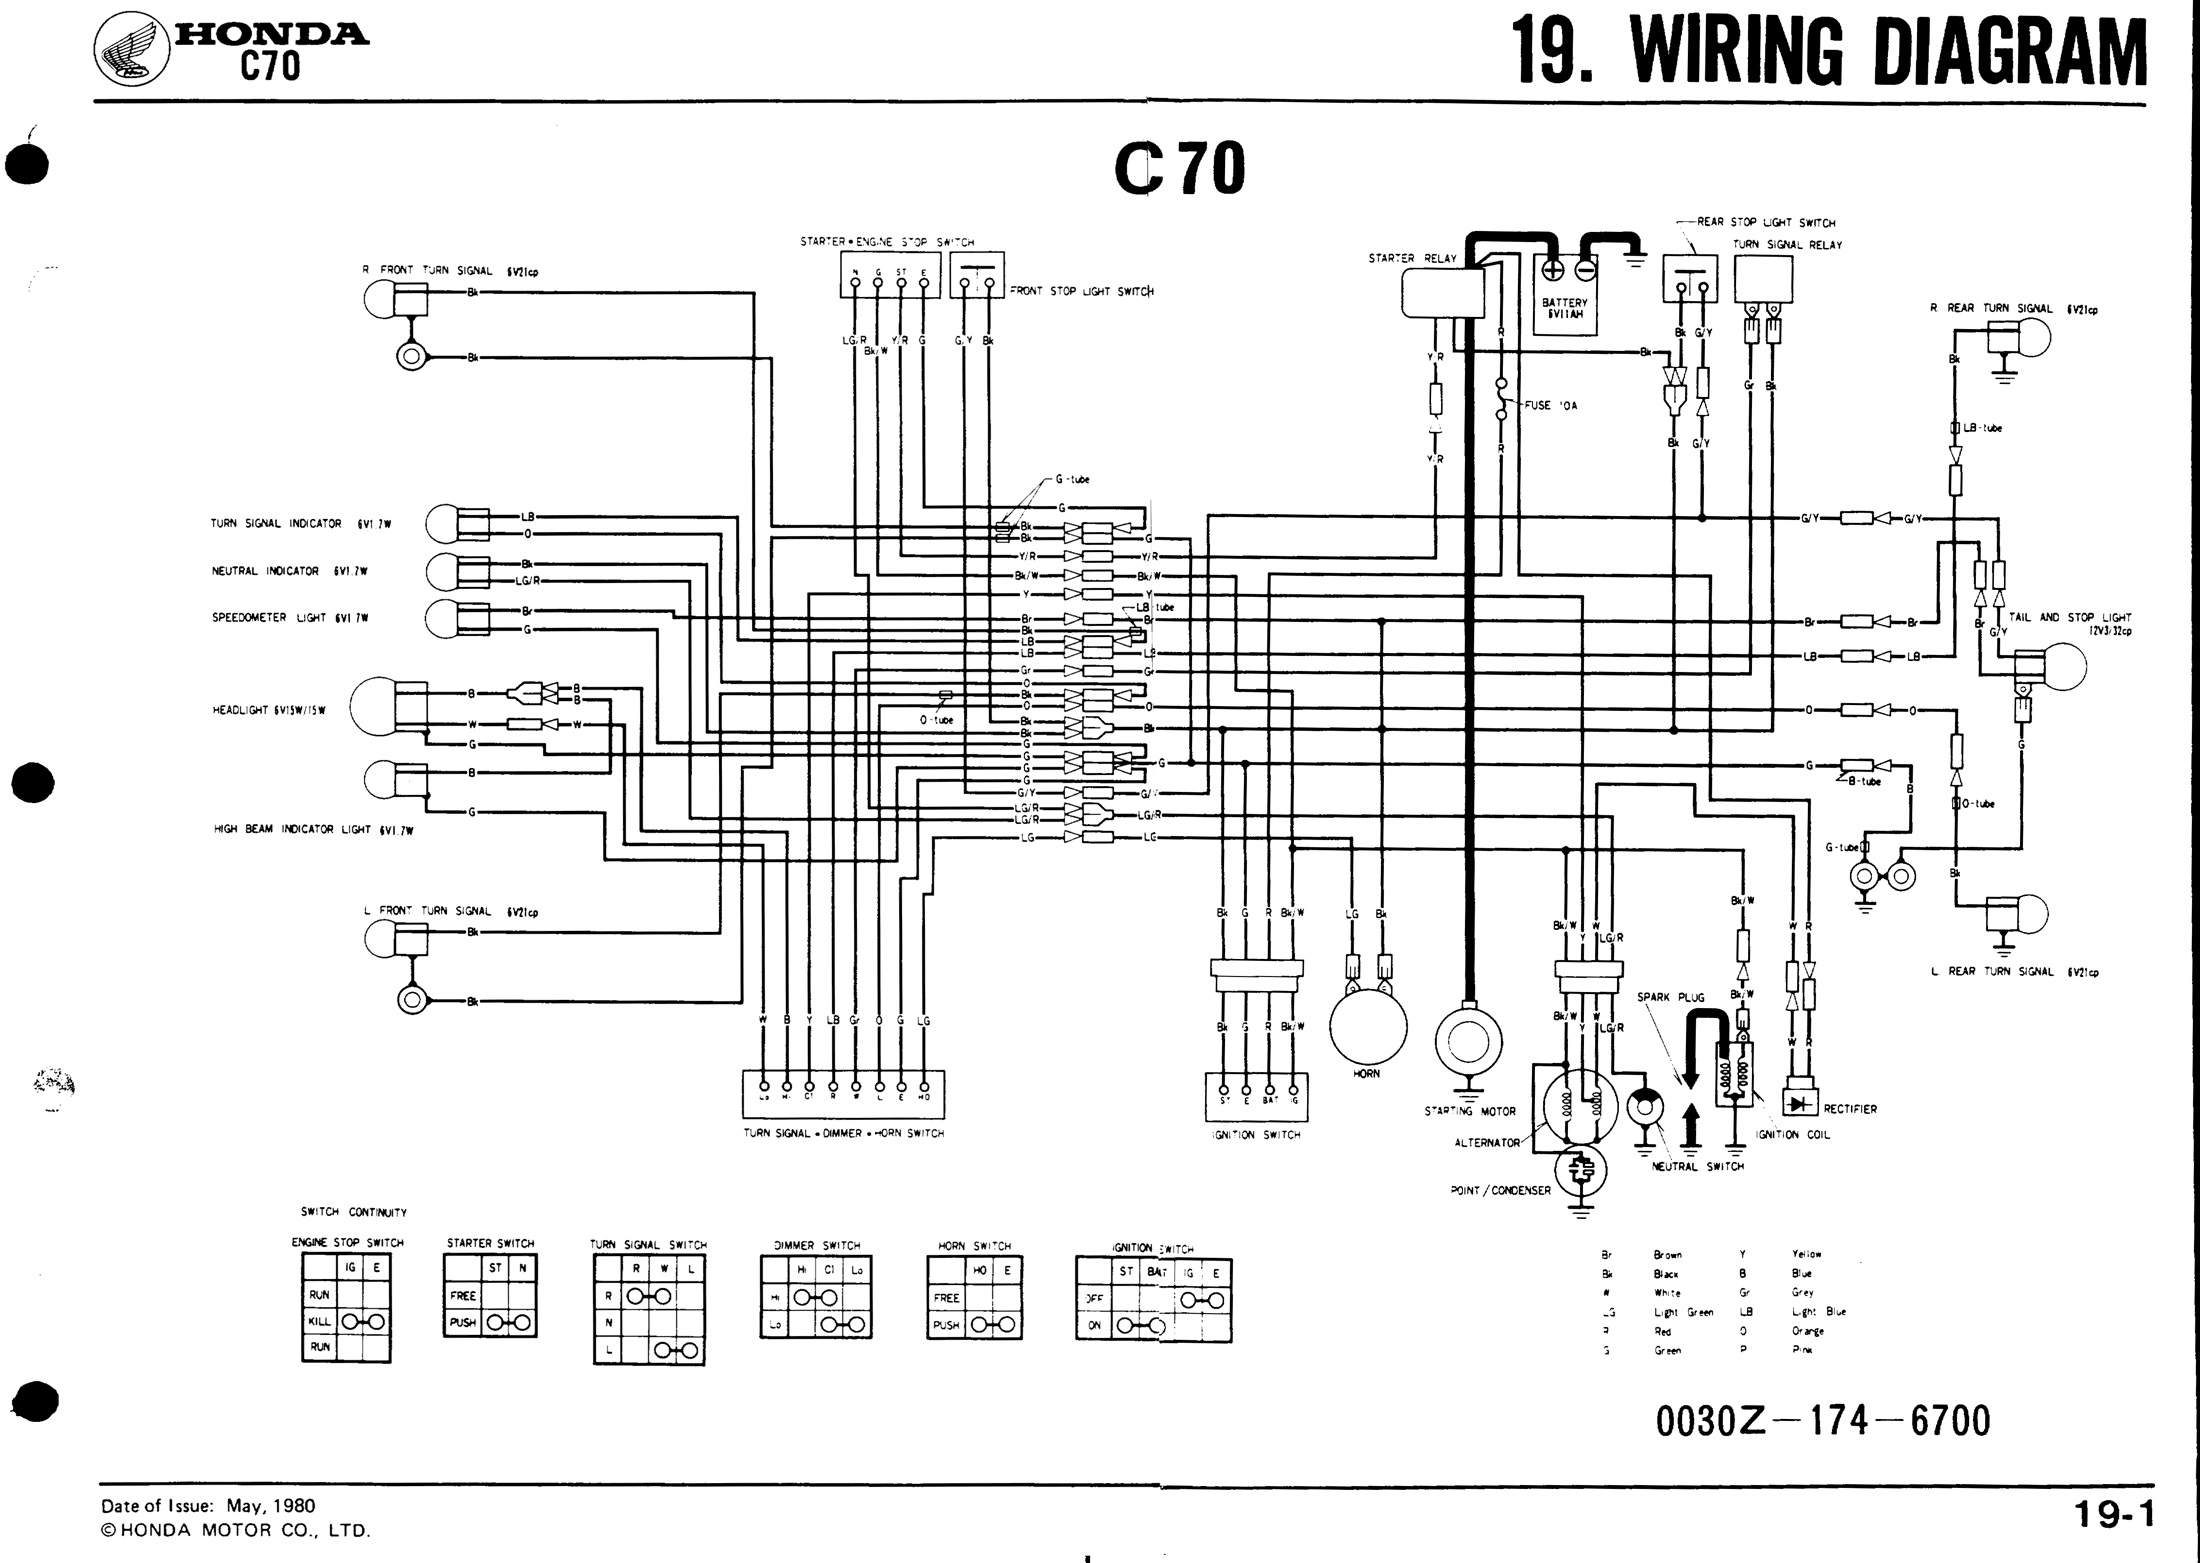 honda 70 wiring diagram honda discover your wiring diagram c70 honda wiring diagram